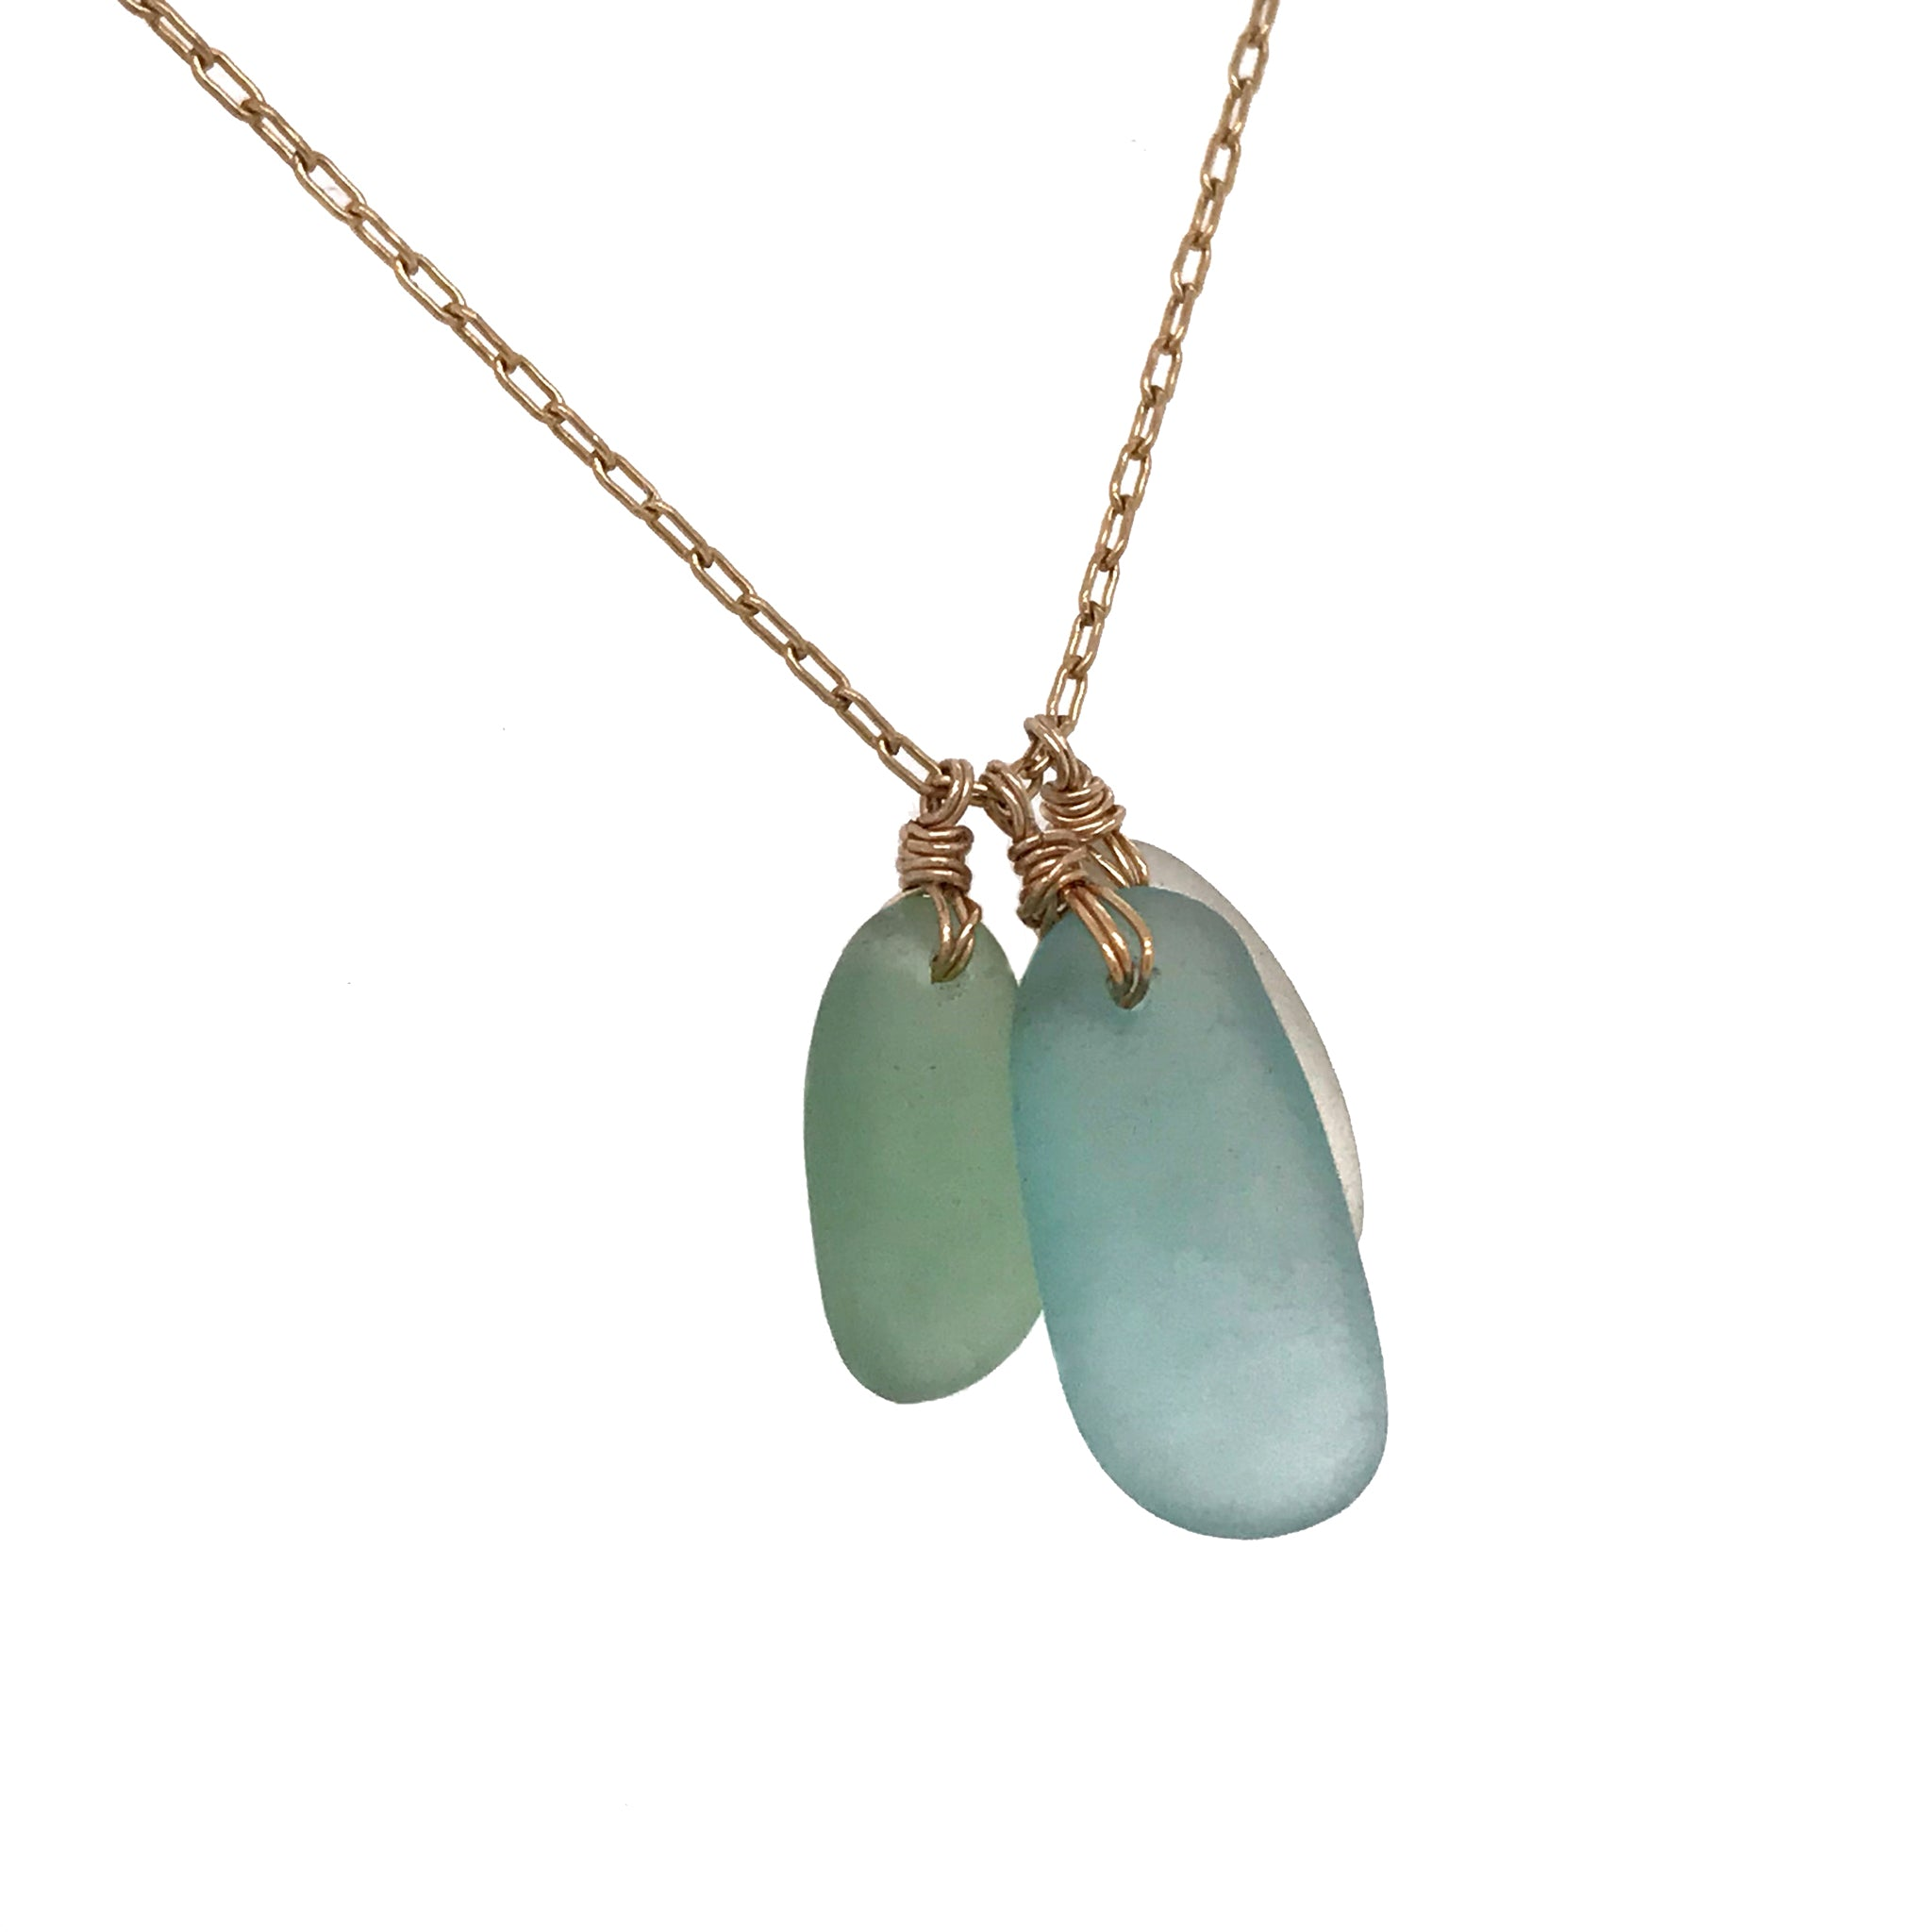 aqua green and clear sea glass on gold necklace kriket broadhurst one-of-a-kind jewellery